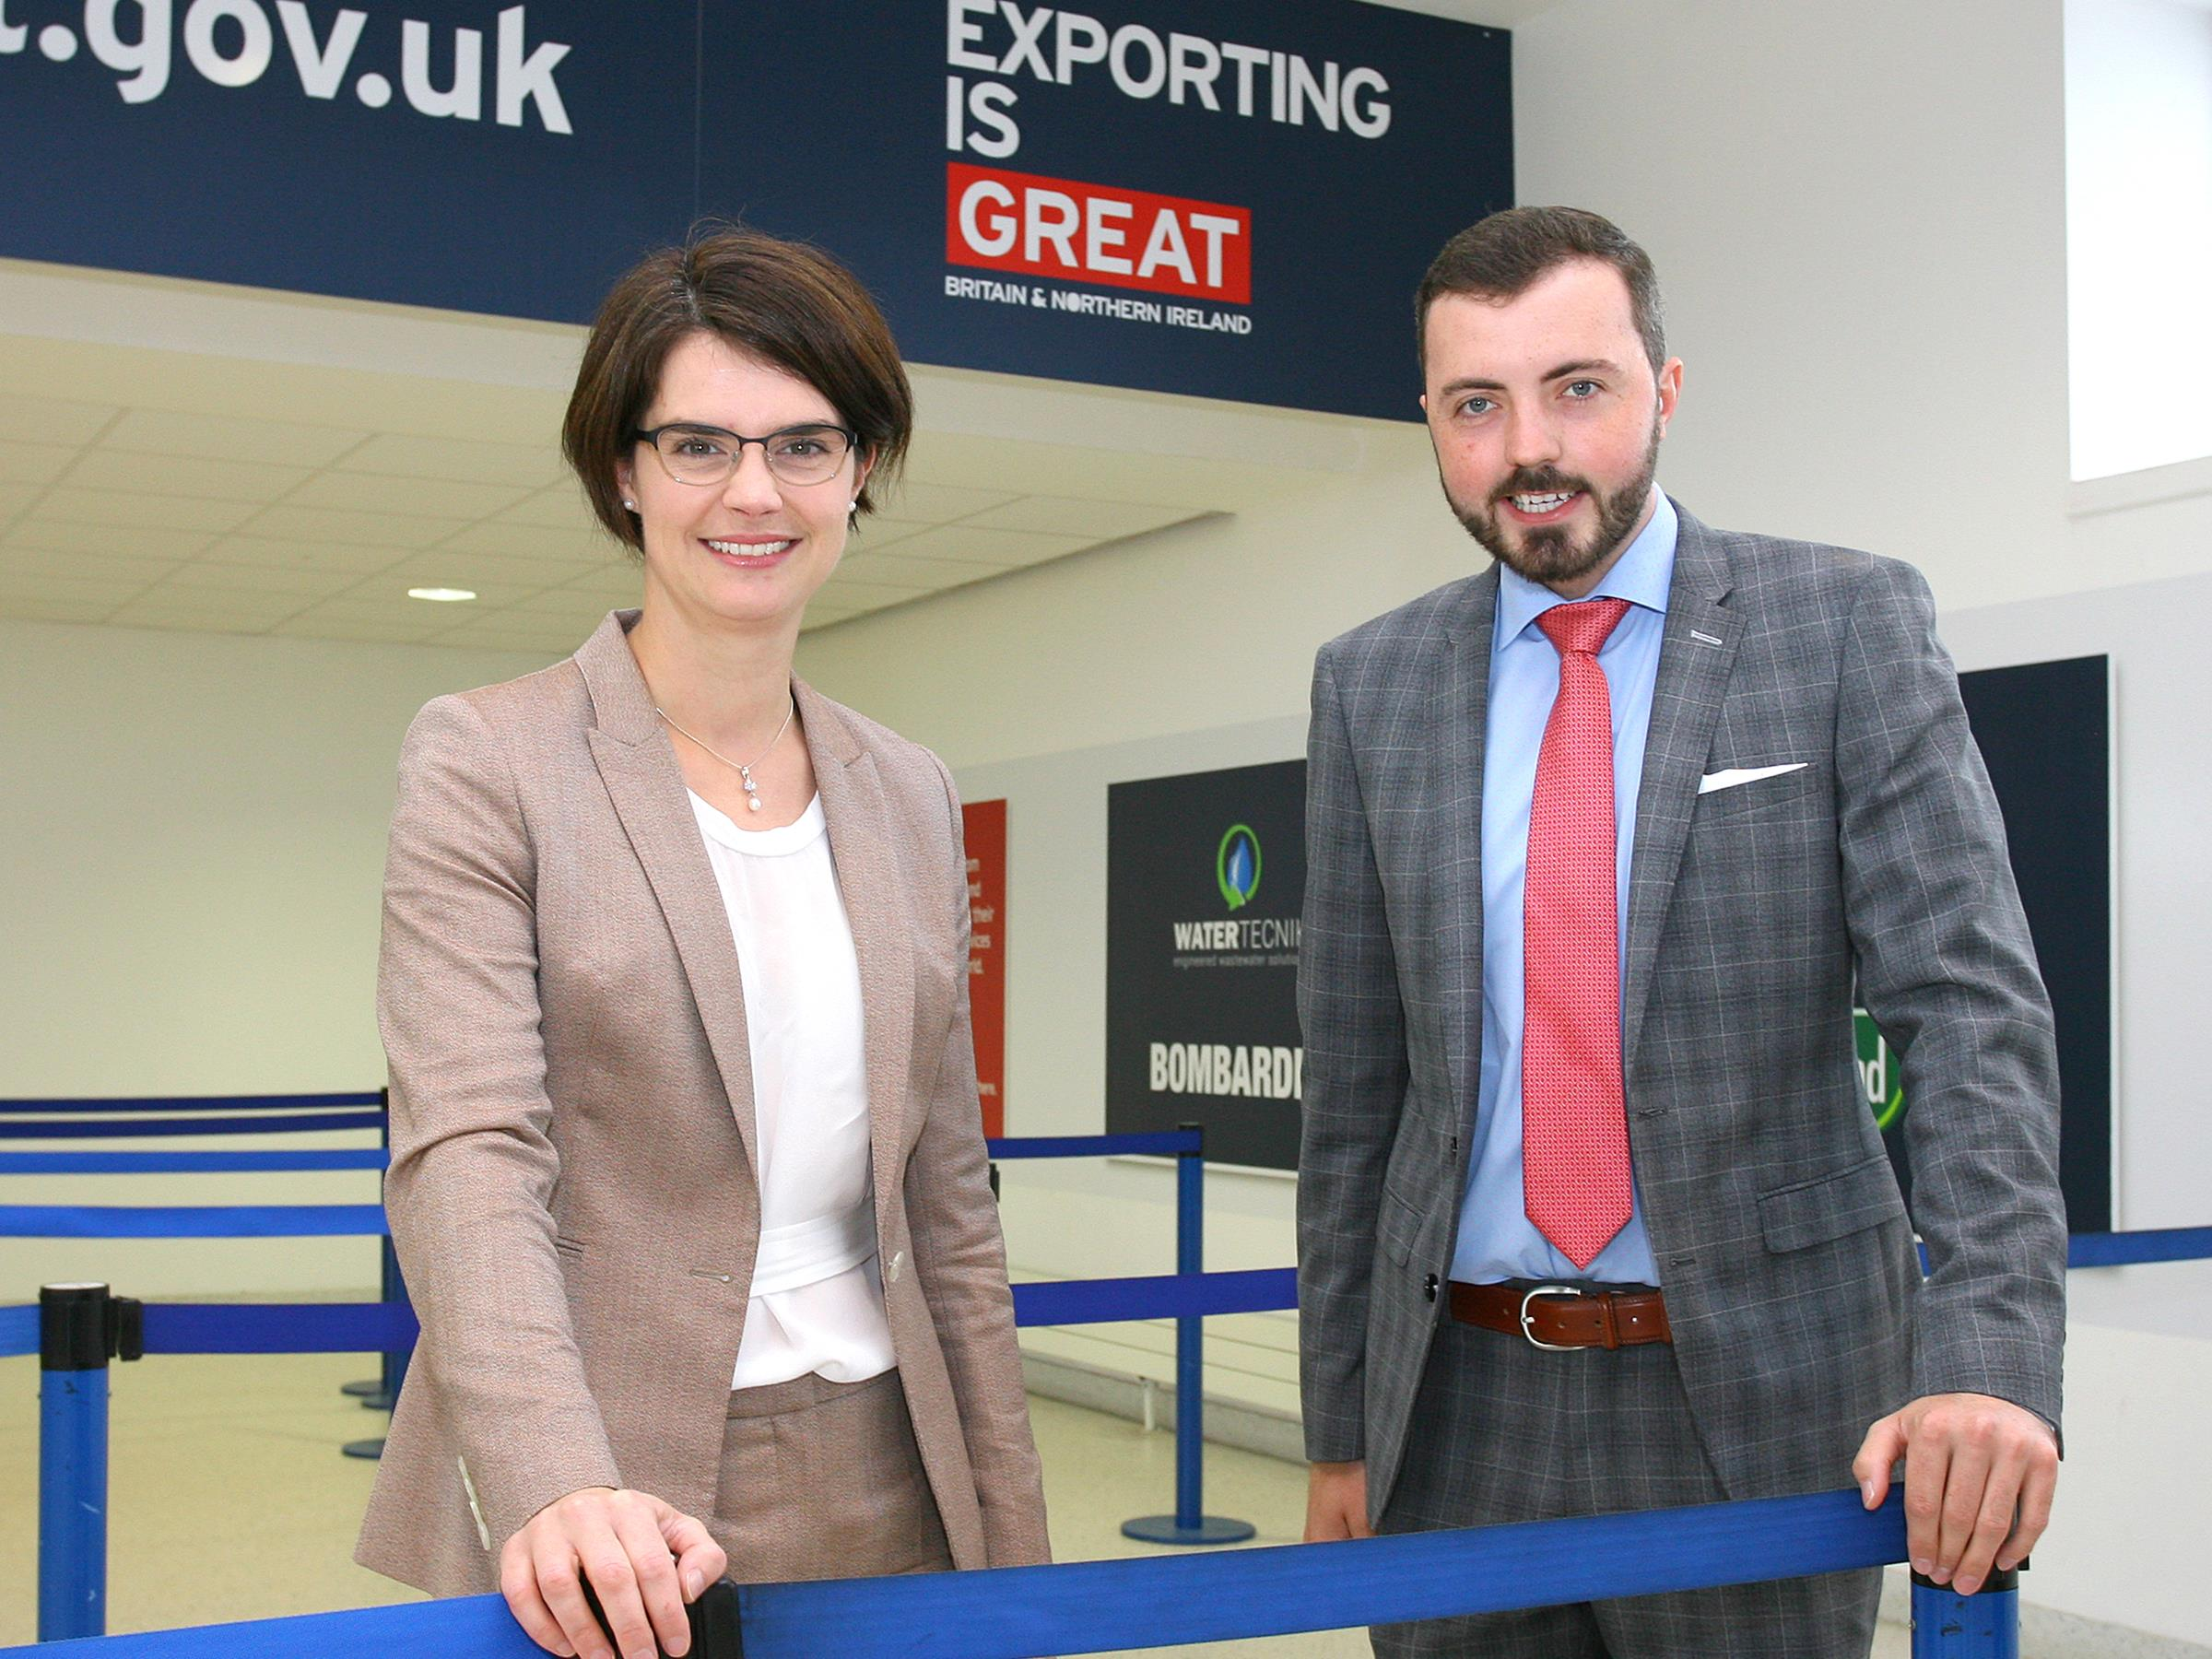 Exporting campaign hits Northern Ireland as local businesses are encouraged to export